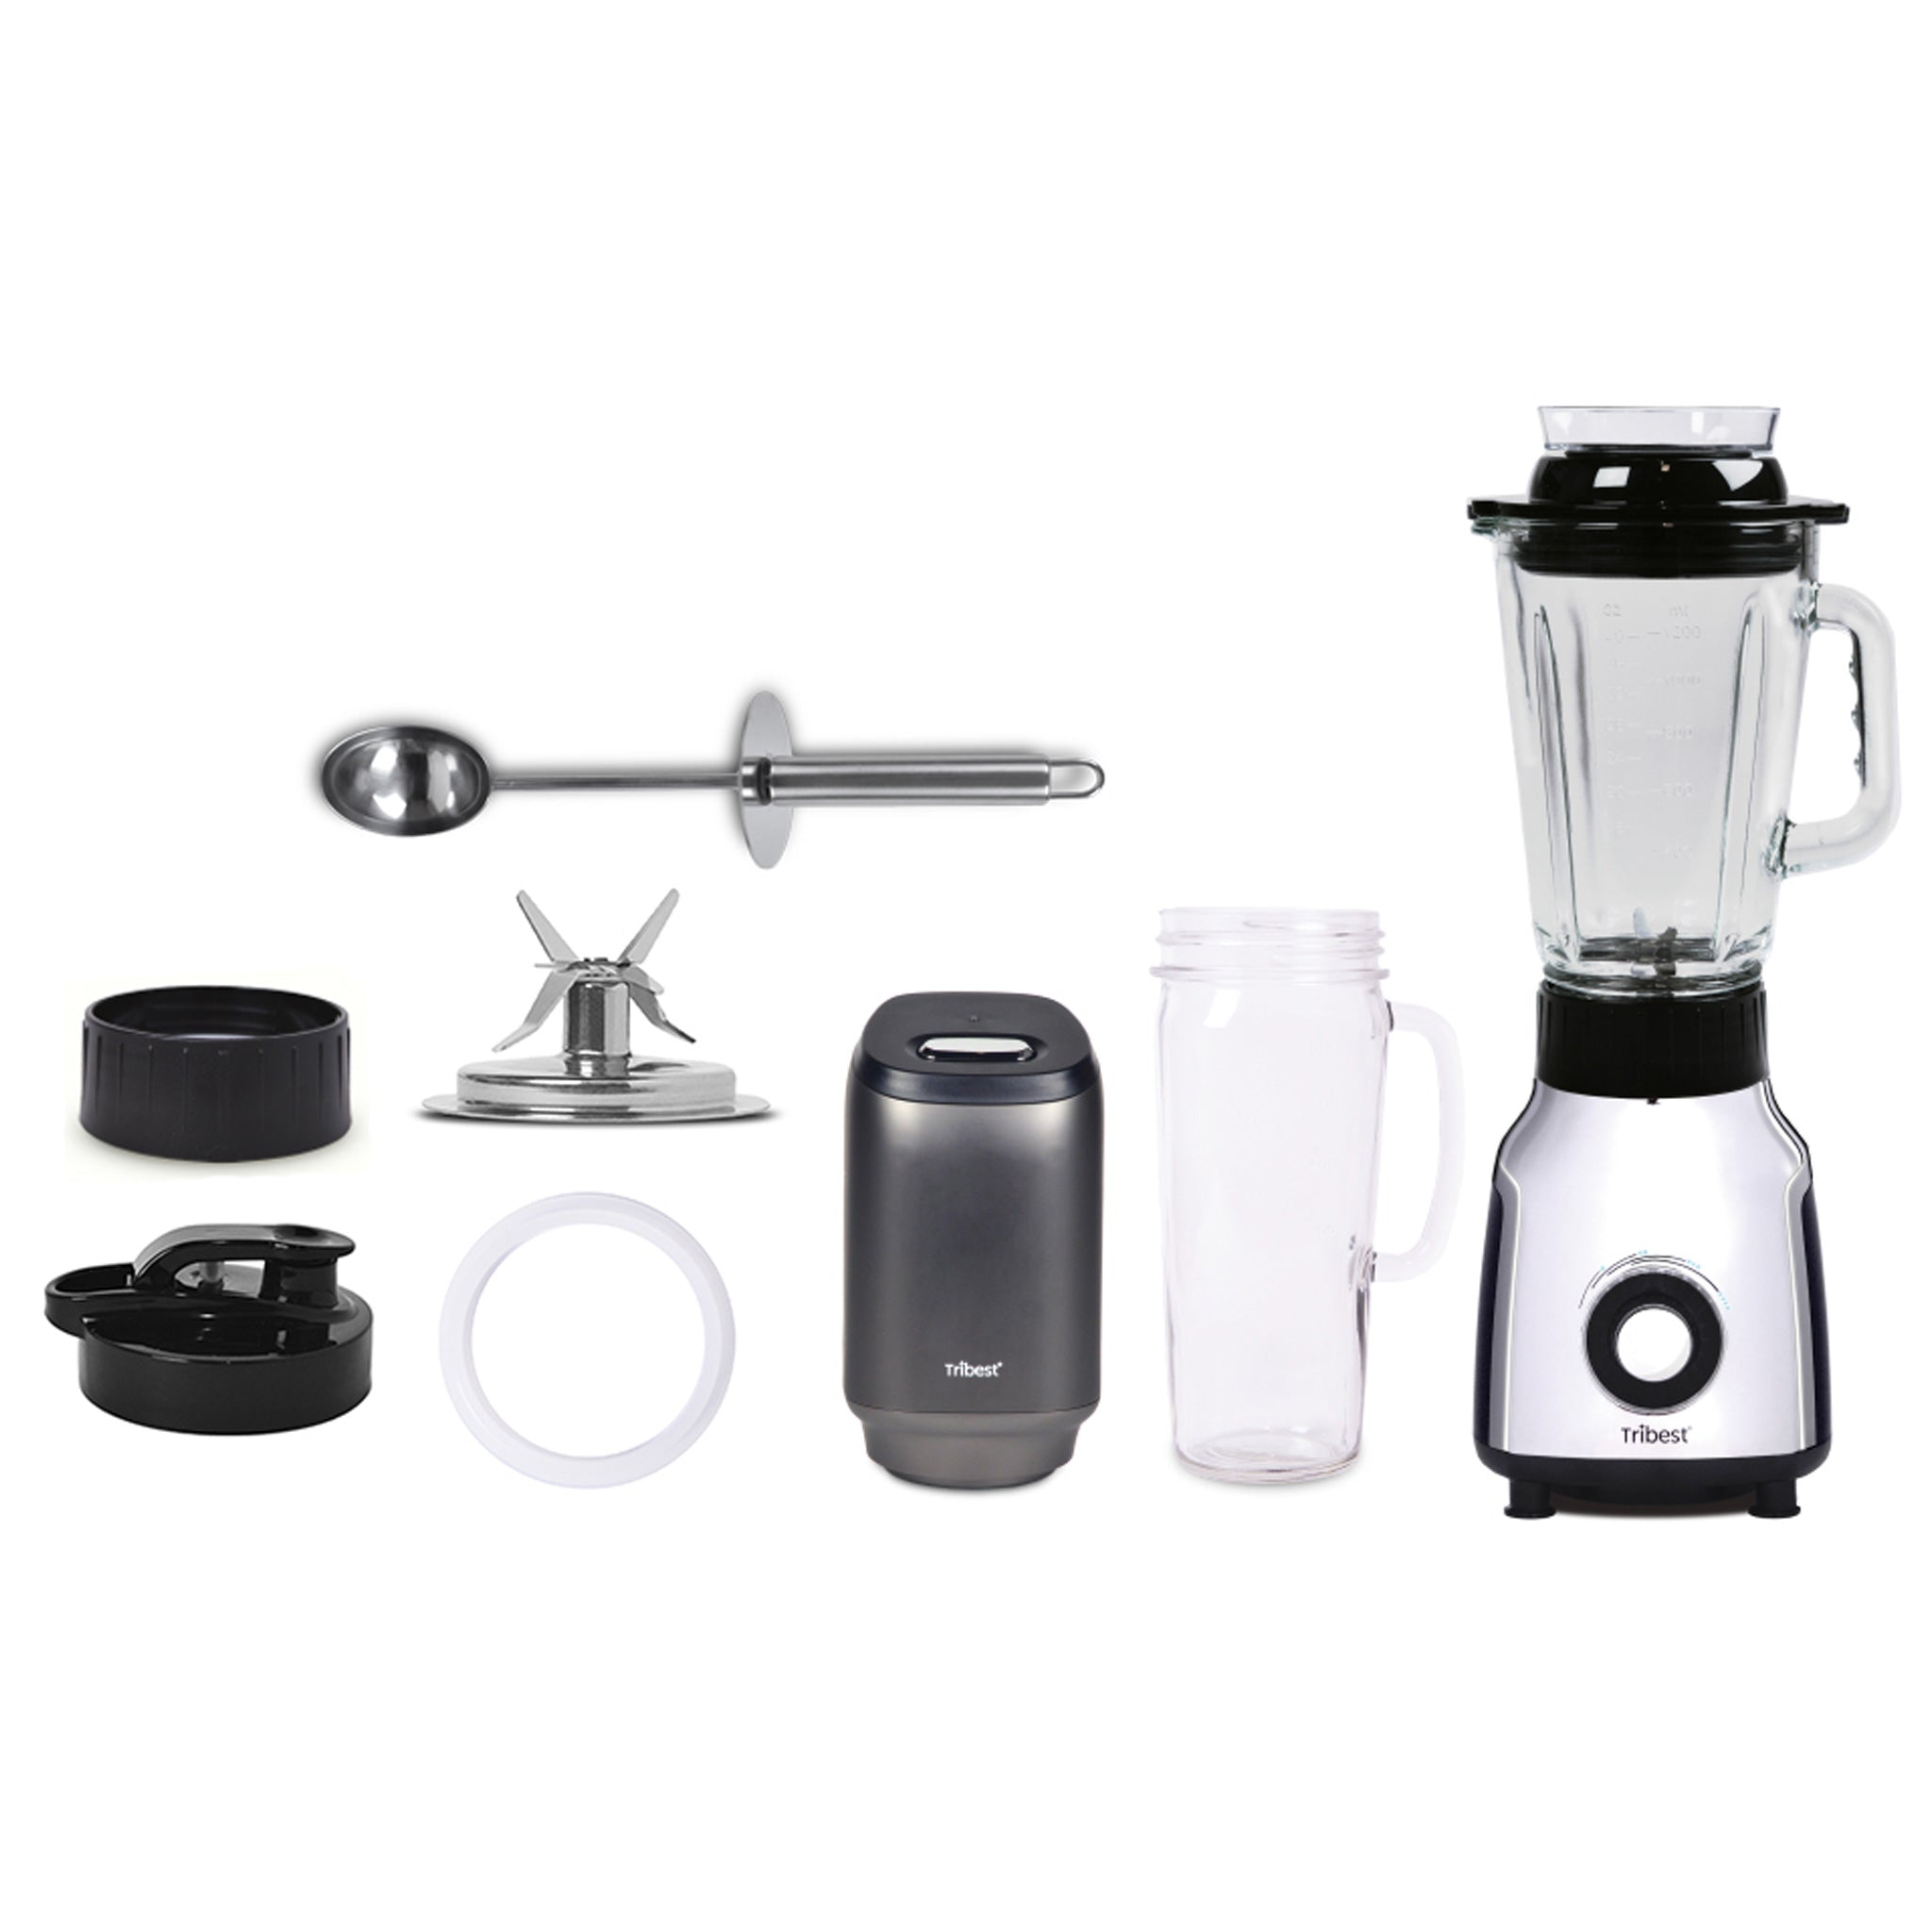 Glass Personal Blender with Vacuum Blender PBG-5001-A - Parts - Tribest